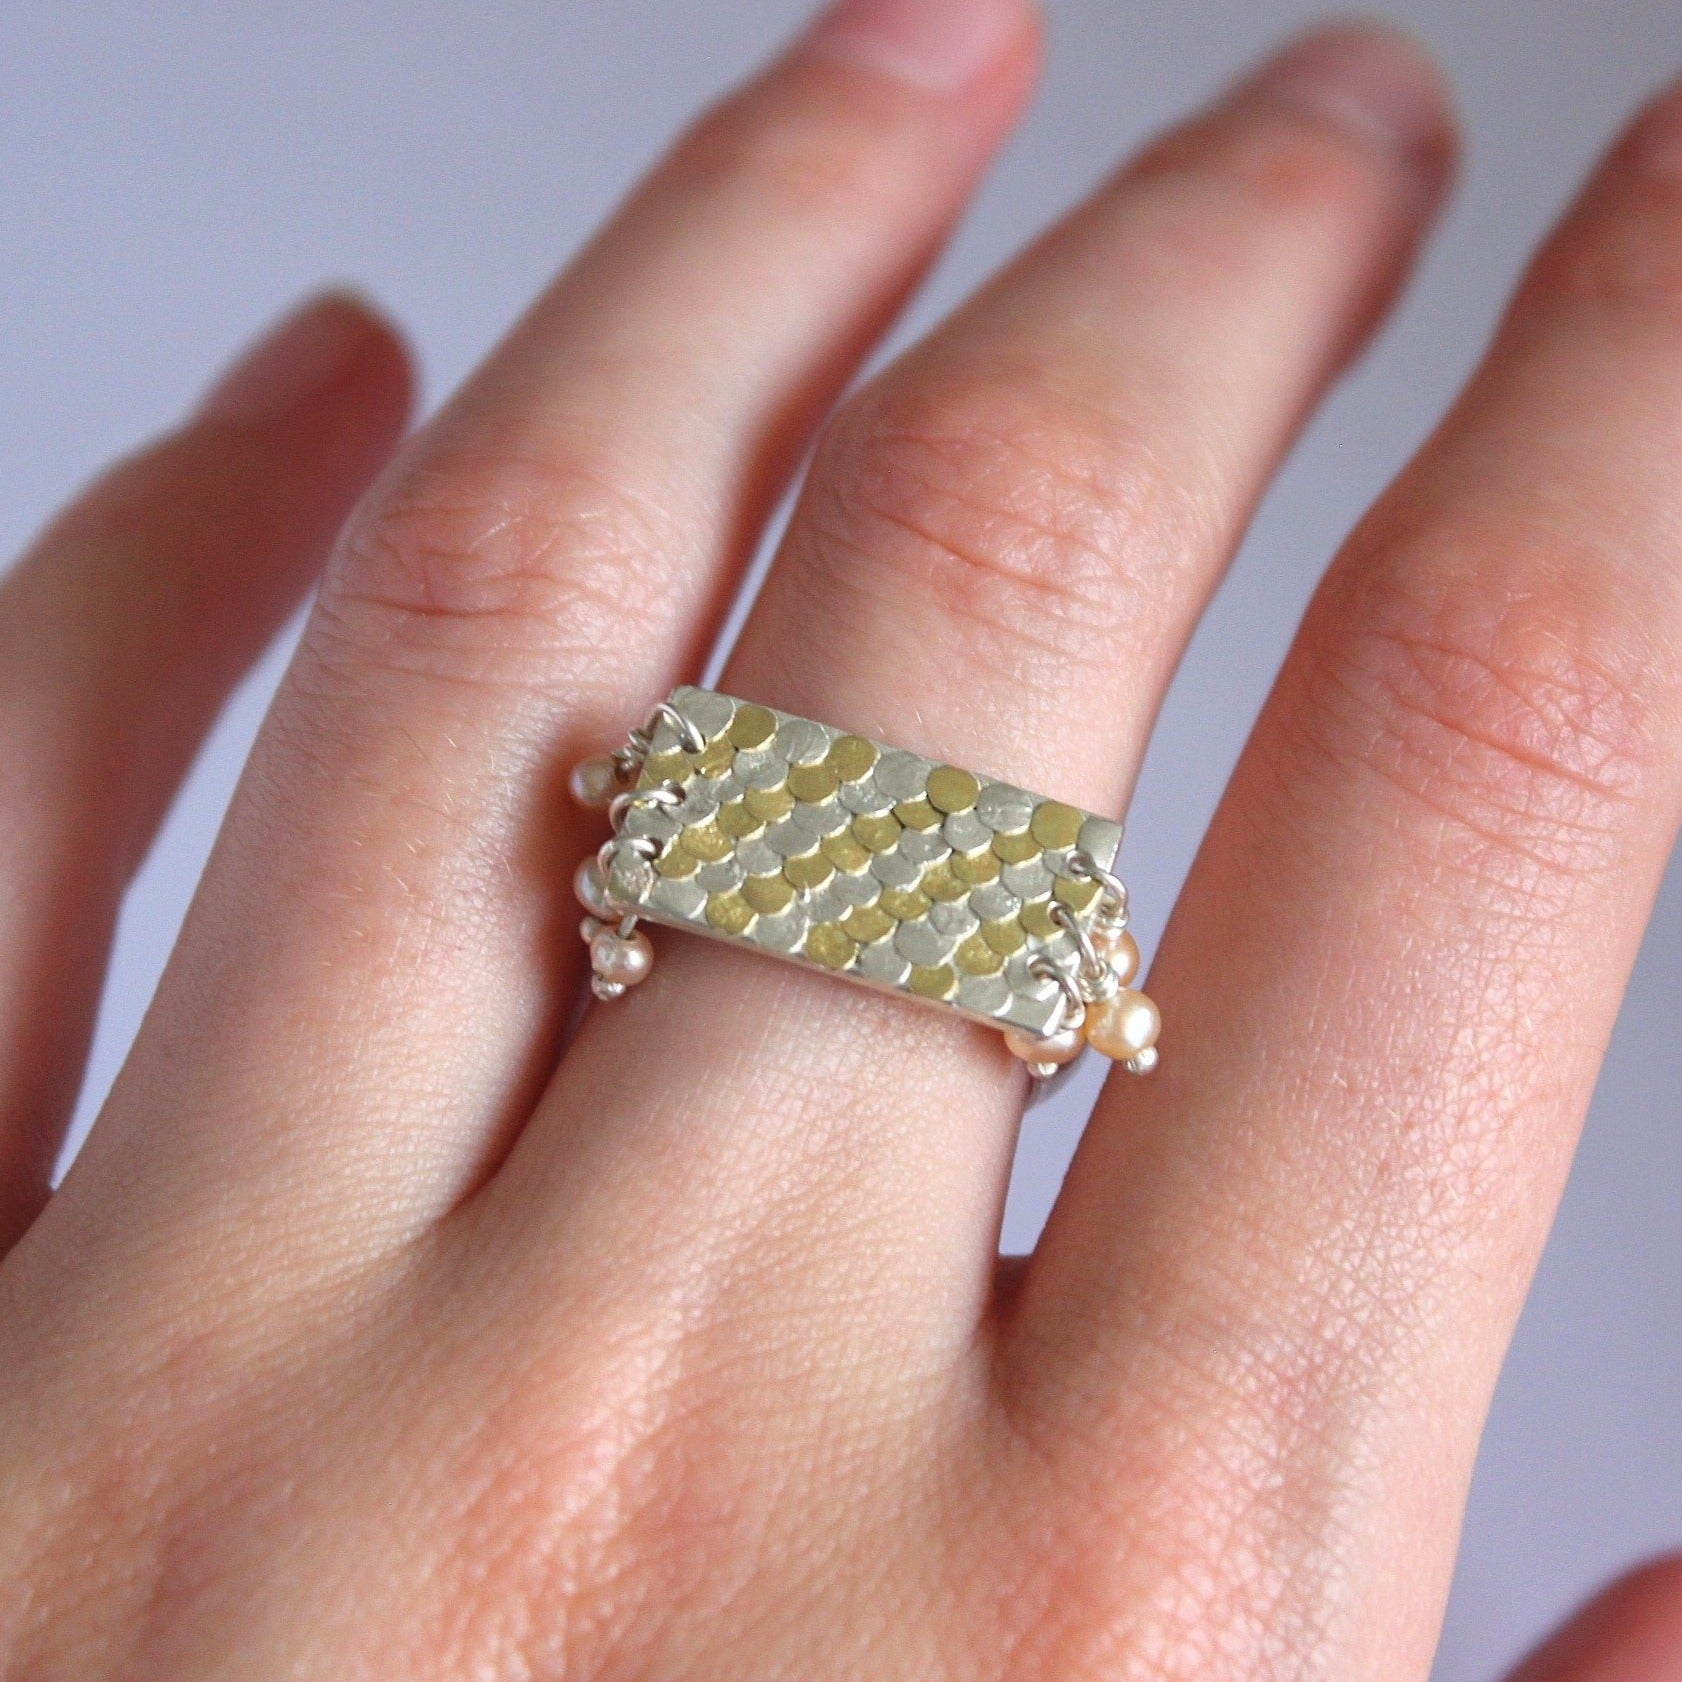 Aphrodite ring